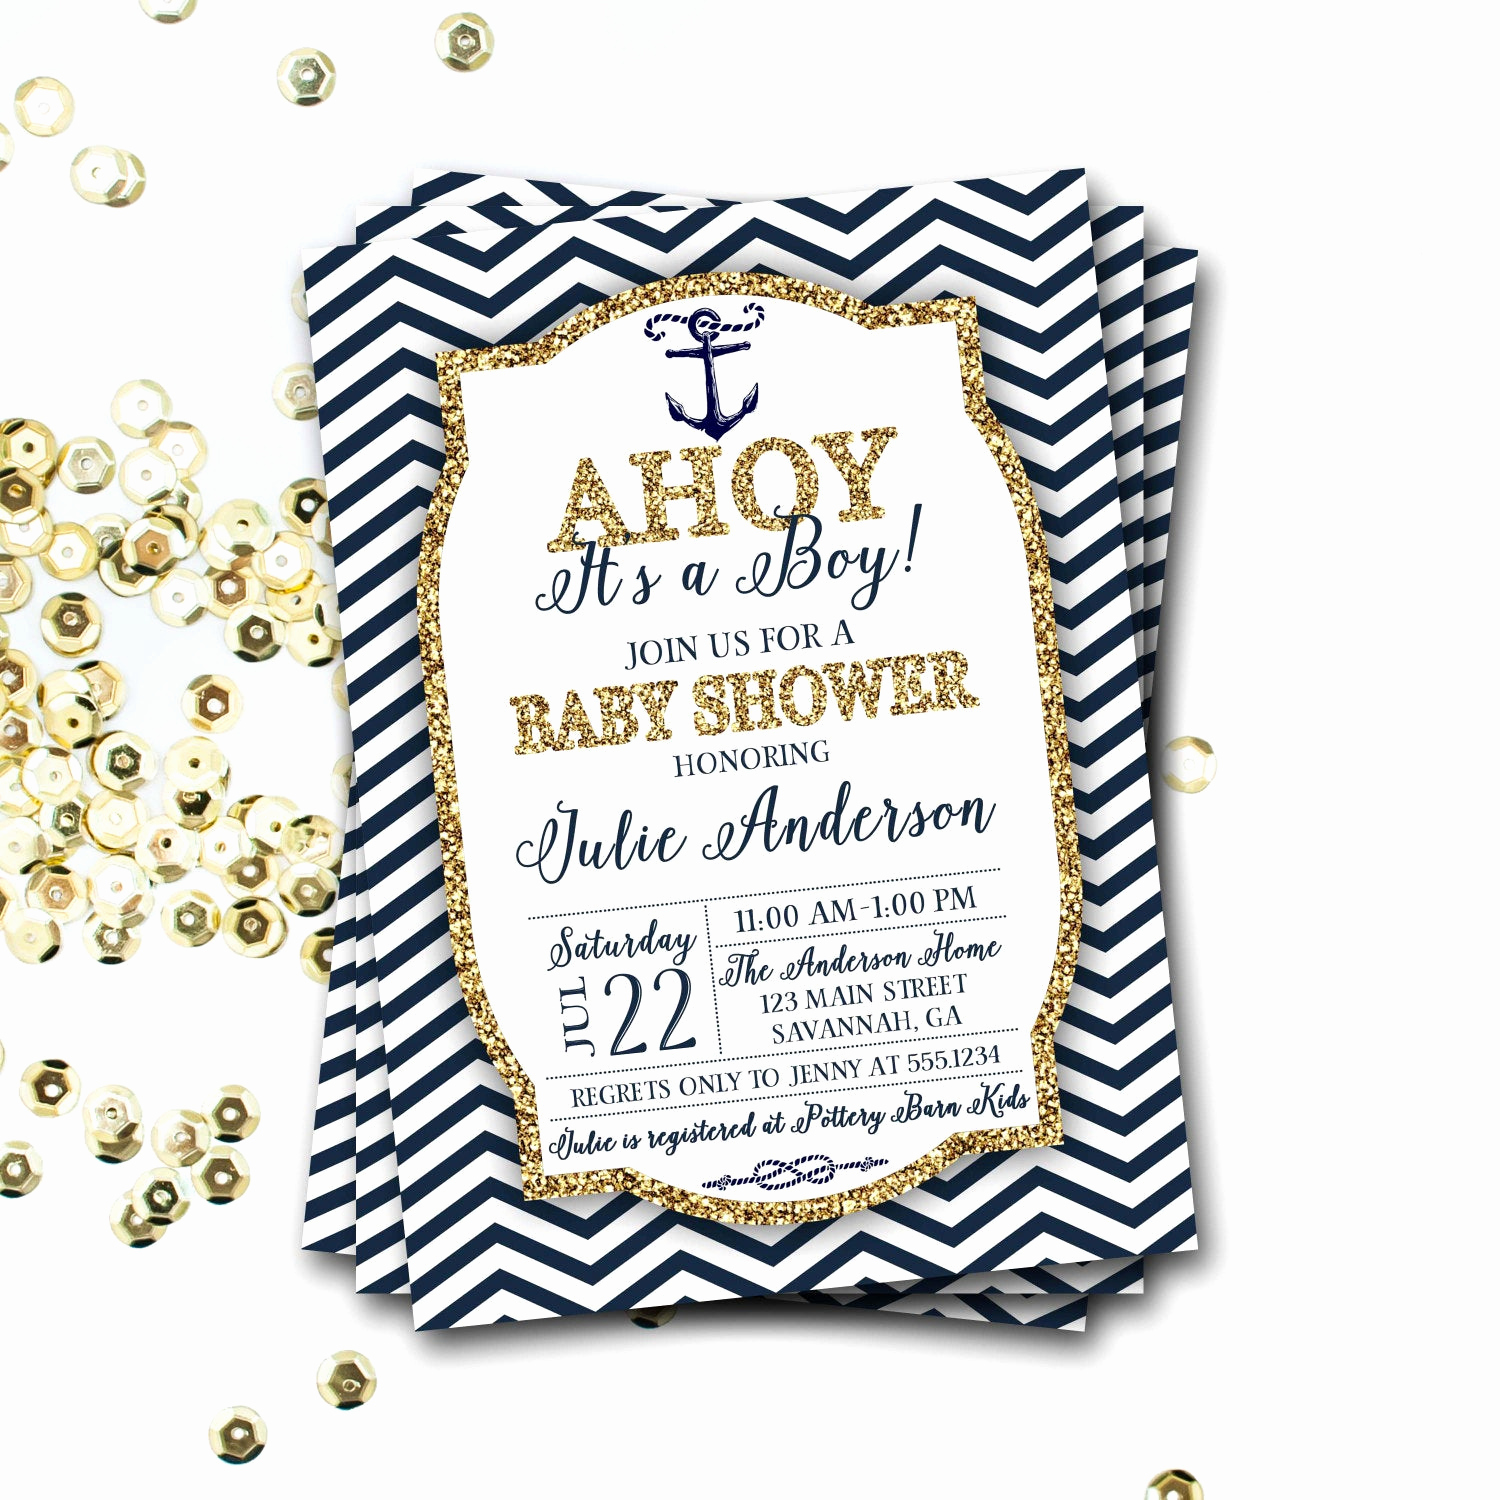 Nautical Baby Shower Invitation Template Inspirational Nautical Baby Shower Invitation Navy and Gold Nautical